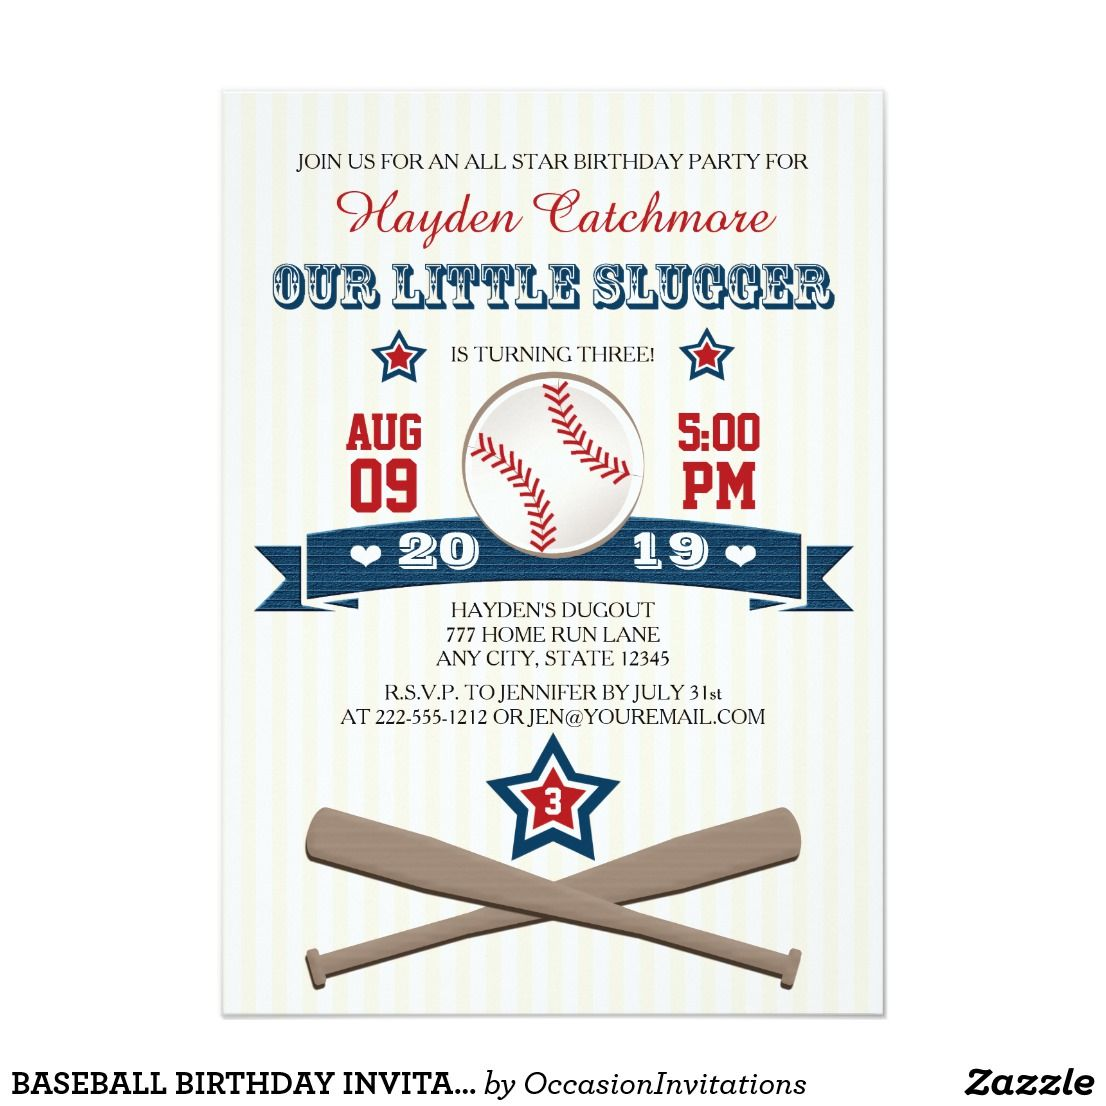 BASEBALL BIRTHDAY INVITATION FOR CHILDREN A BOY TURNING ONE, TWO ...